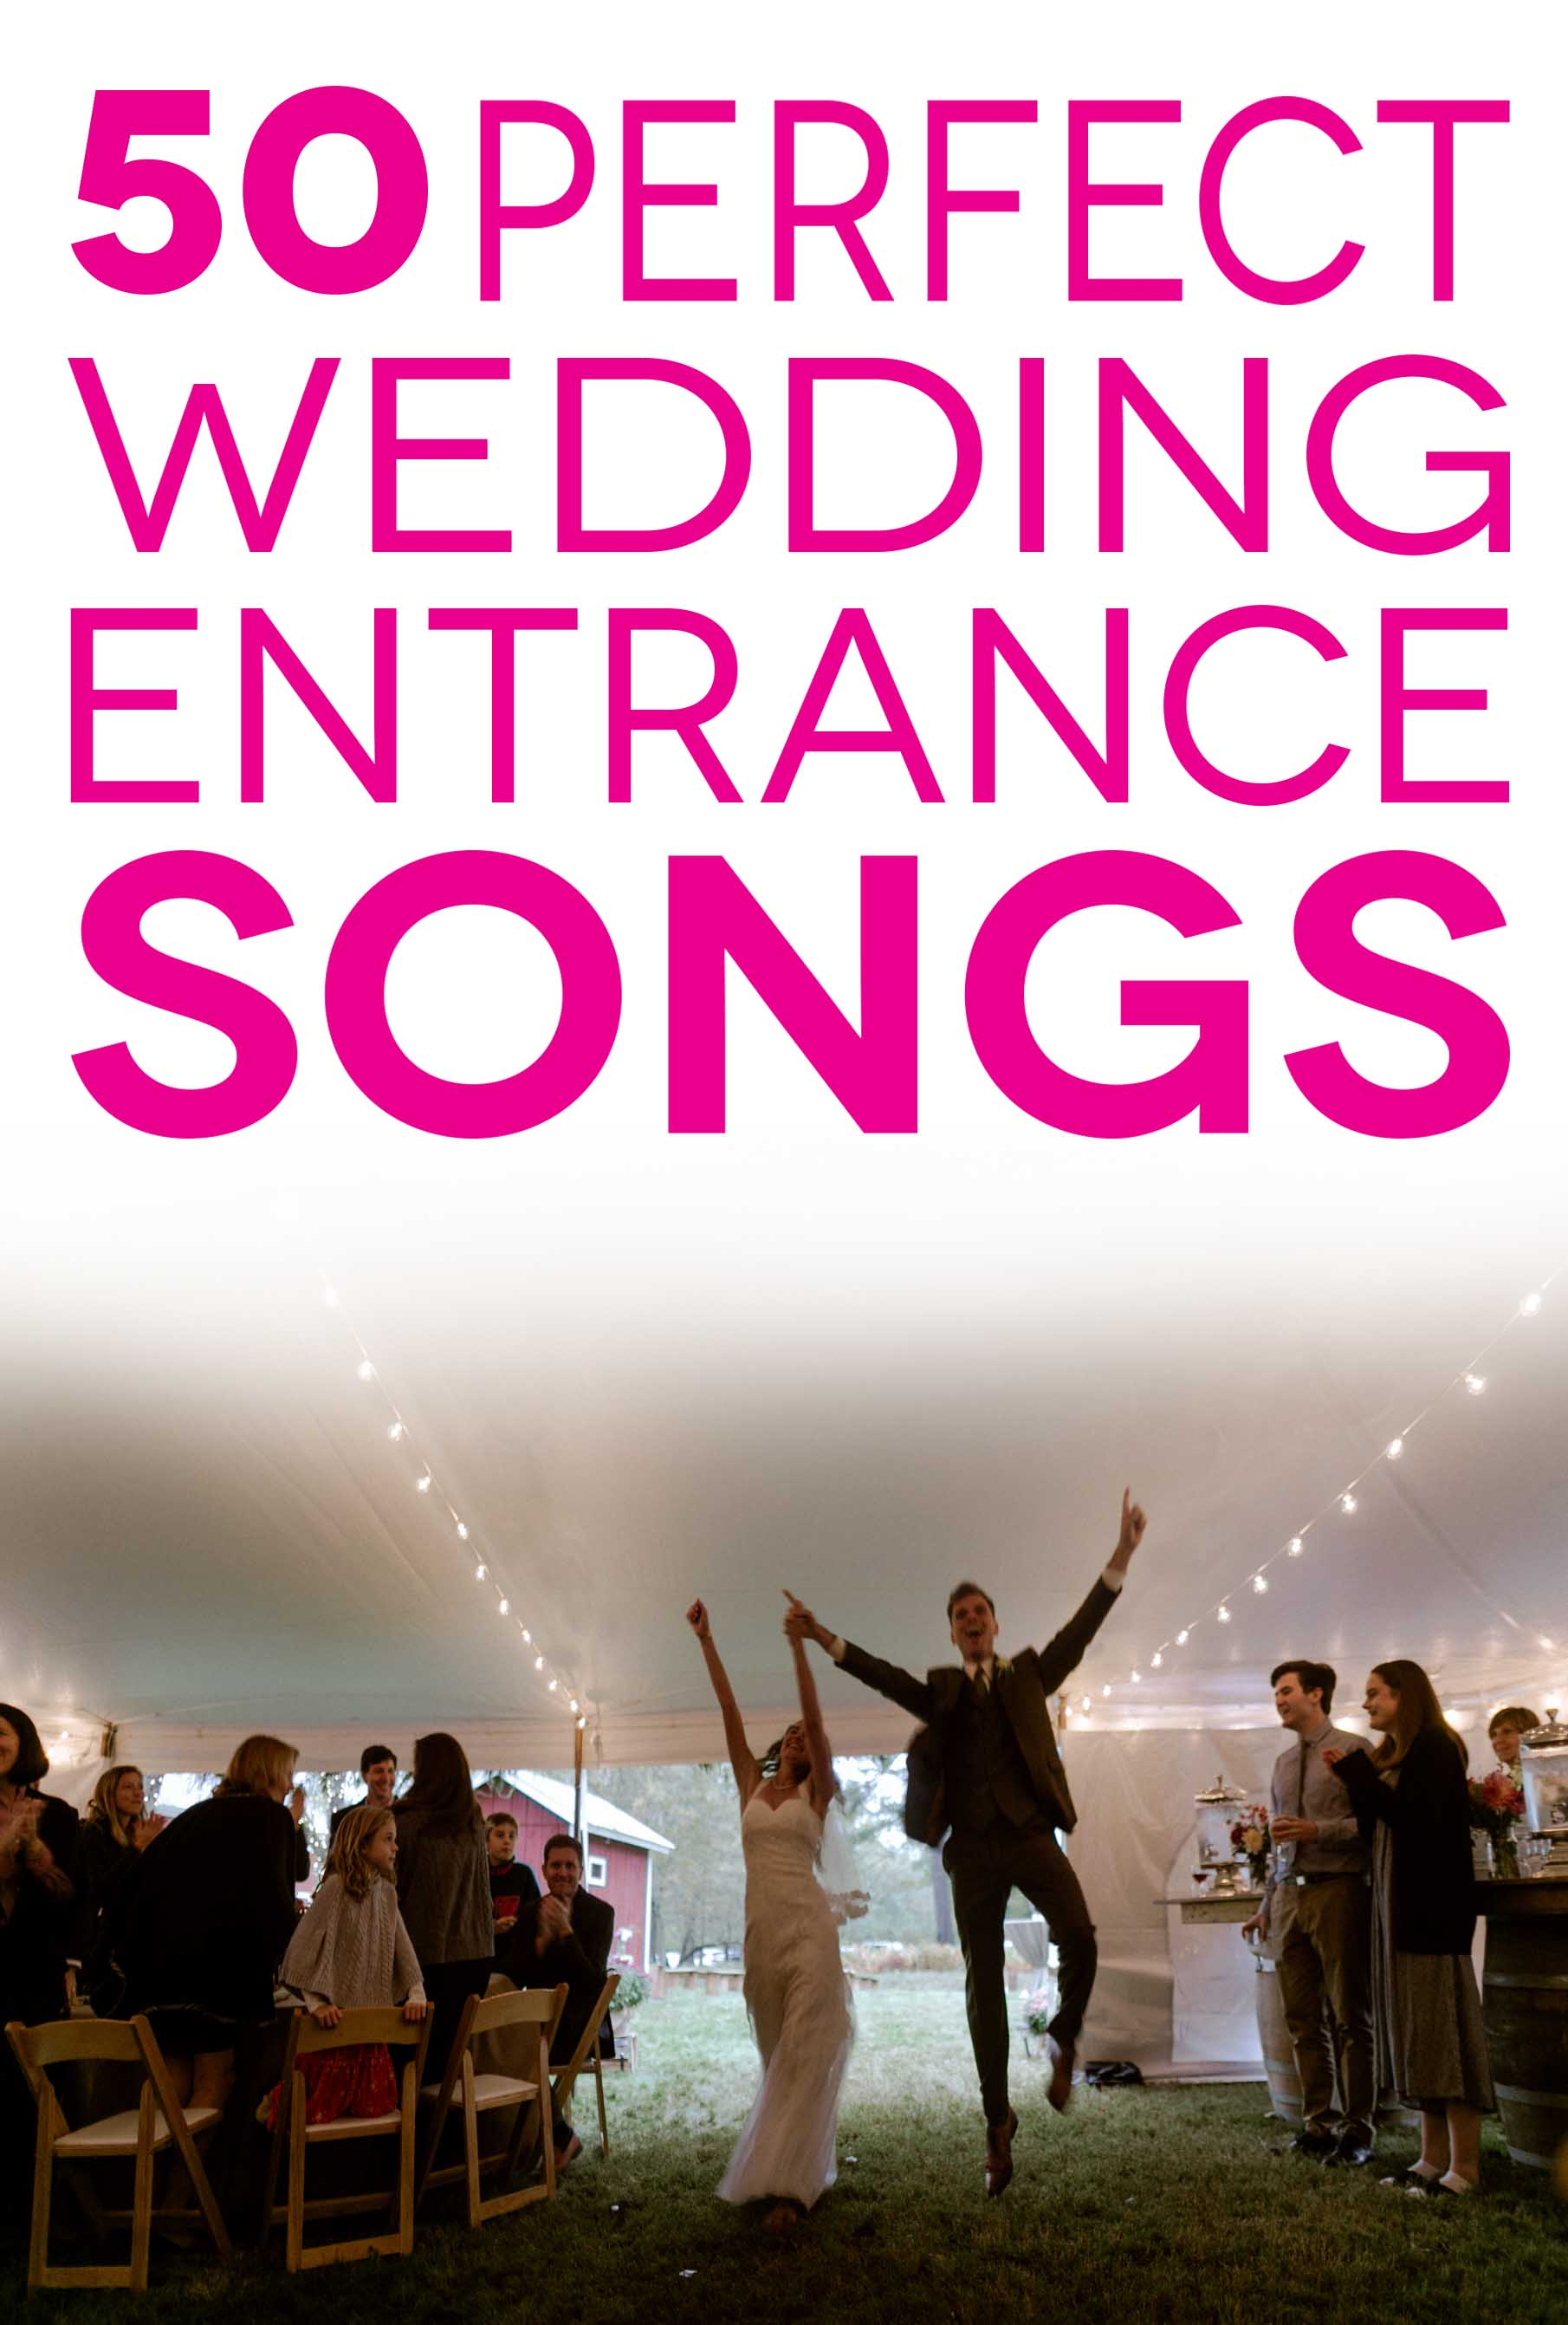 Wedding Entrance Songs To Get The Party Started | A Practical Wedding